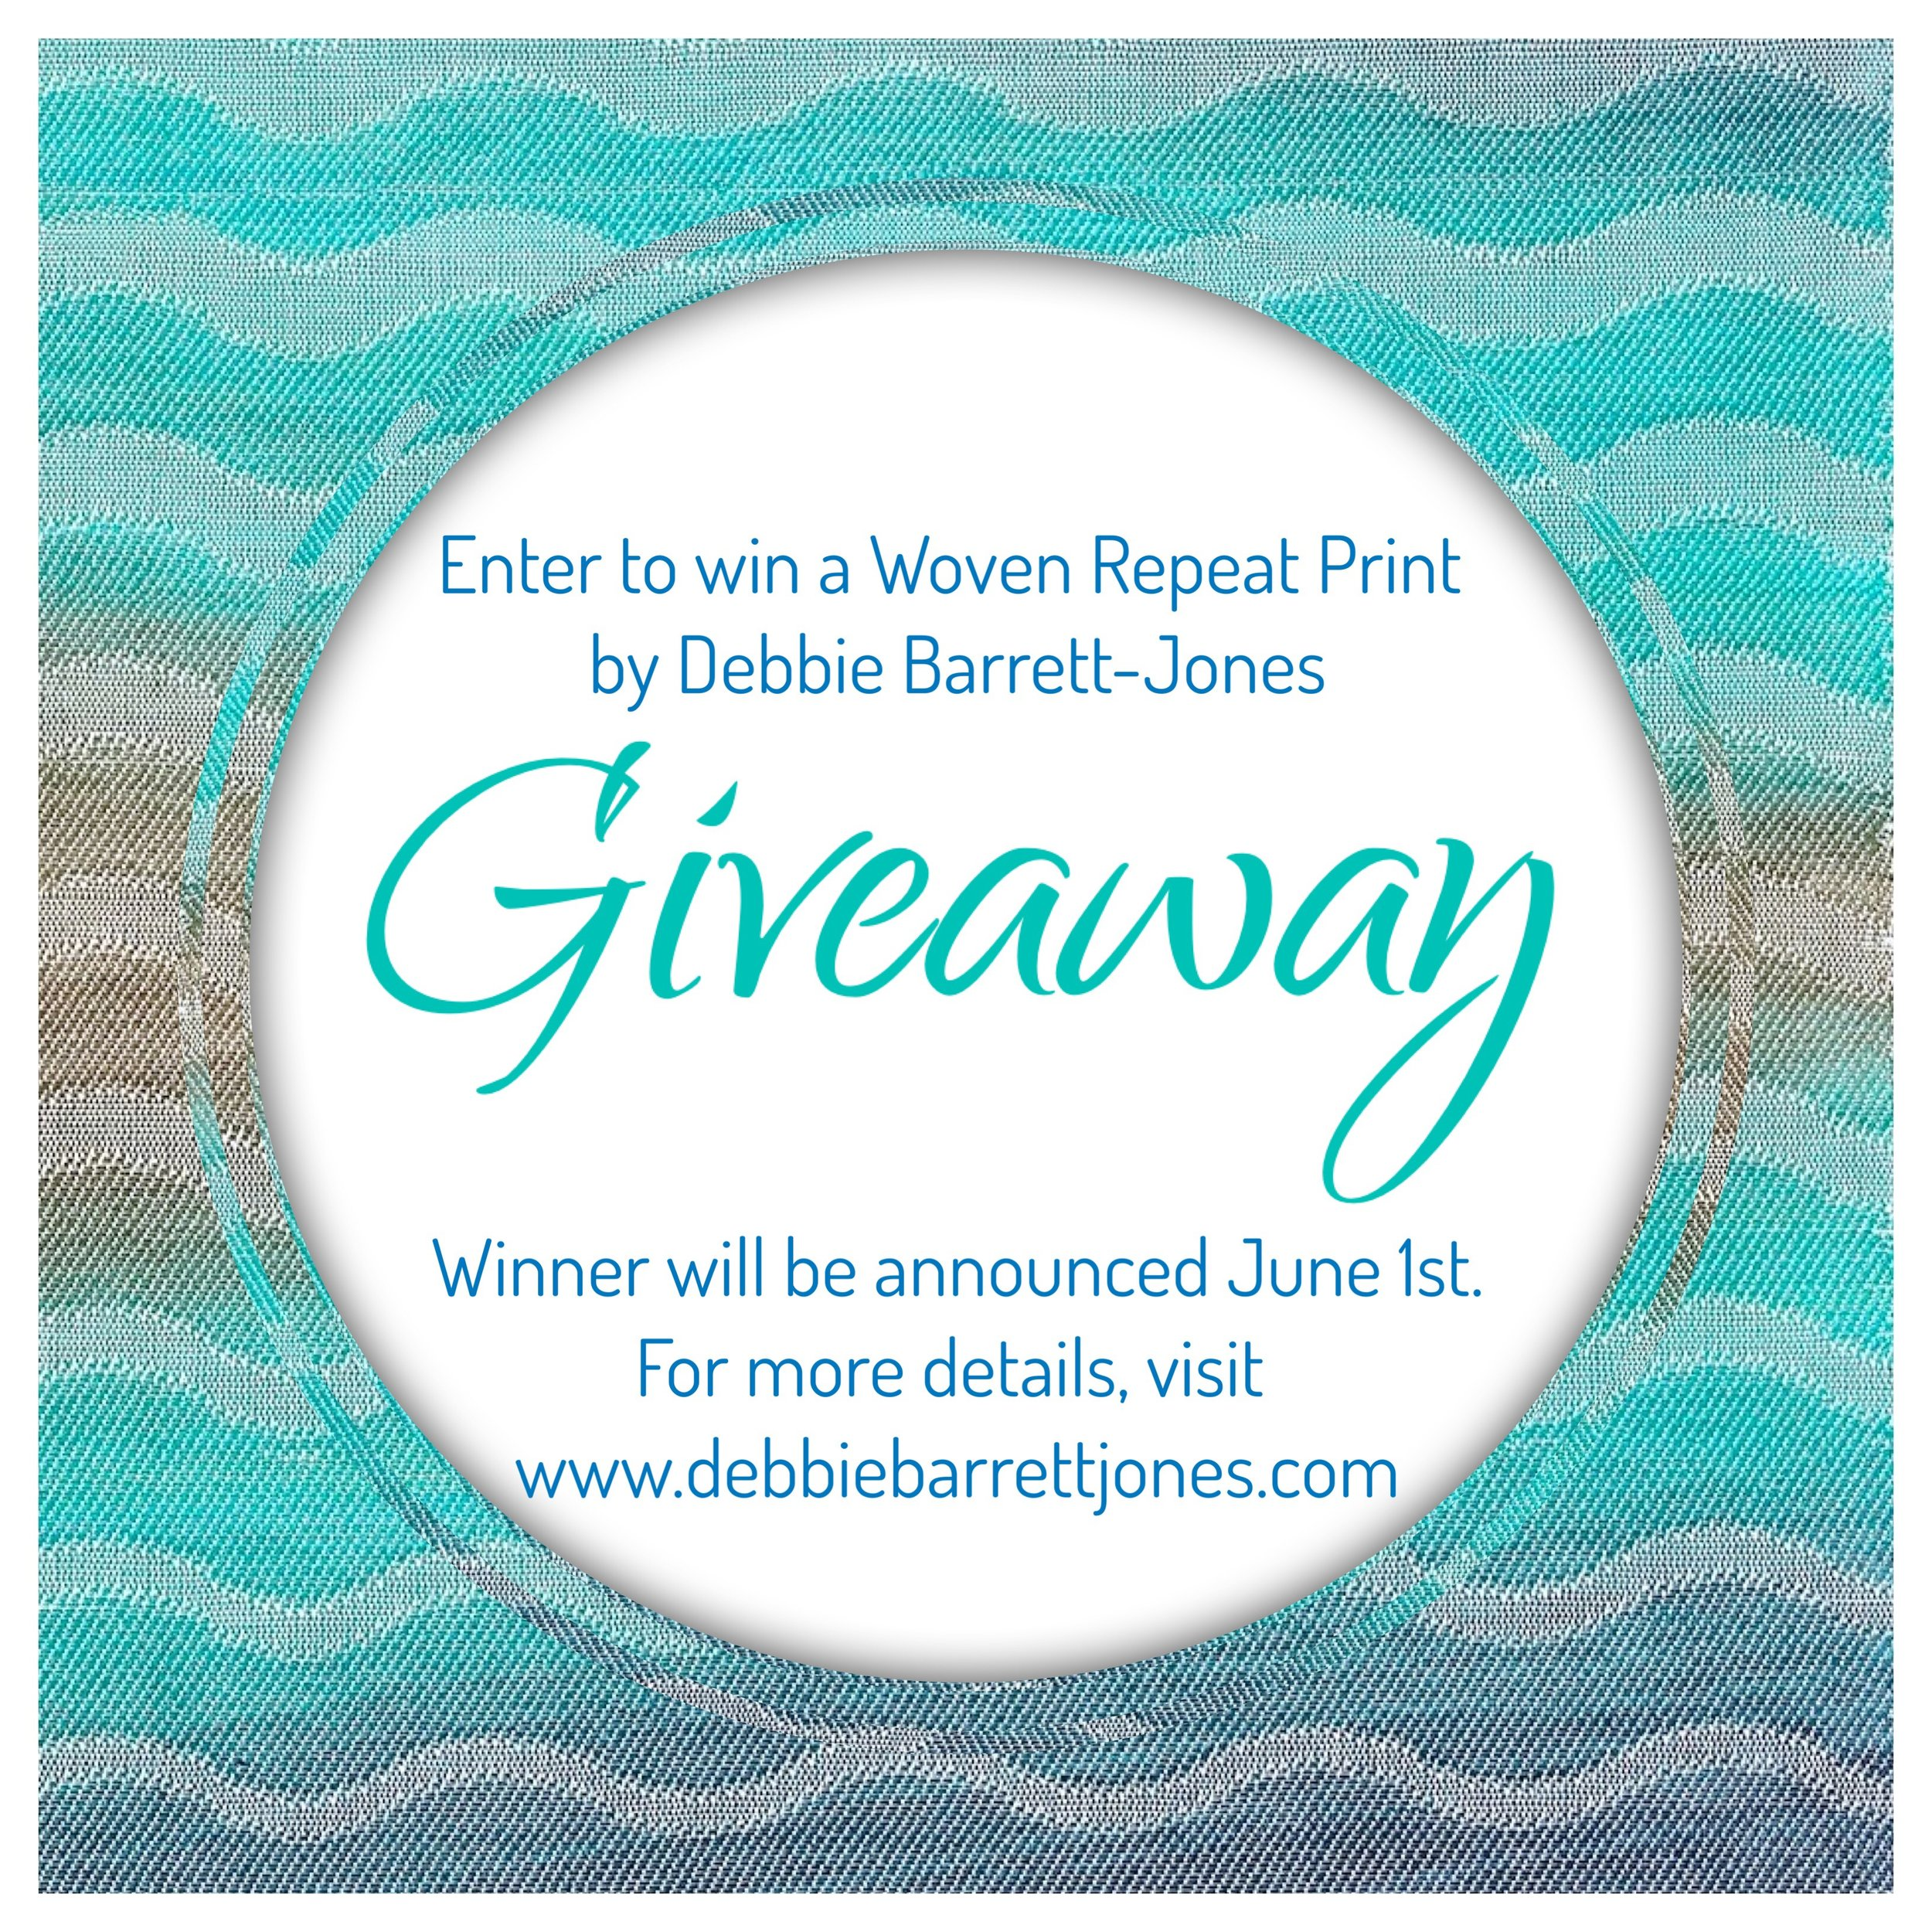 """Enter to Win A Woven Repeat Print by Debbie Barrett-Jones   Let """" Navy to Aqua to Brown Waves""""  11x14 inch Woven Repeat Print by Debbie Barrett-Jones be your new piece of artwork.  Here's four ways how you enter the Woven Repeat Free Giveaway, each giving you a chance to win;  1. Subscribe to Woven Repeat by going to either  www.debbiebarrettjones.com  or  www.wovenrepeat.com . Look for the Pop-Up Subscribe Button or  email  us to subscribe.    2. Follow Woven Repeat on  Instagram  and repost or share the Woven Repeat Giveaway Post. Make sure to tag  Woven Repeat  in your post.    3. Follow Debbie Barrett-Jones Textiles on  Facebook  and share the Woven Repeat Giveaway Post and tag  Debbie Barrett-Jones Textiles .    4. Go to  Woven Repeat Online  and share on Instagram or Facebook your favorite Woven Repeat Creation.  Last day to enter the Woven Repeat Giveaway is Friday May 31st at 11:59pm.  Winner will be announced and contacted on Saturday June 1st.  Thank you and good luck!!"""